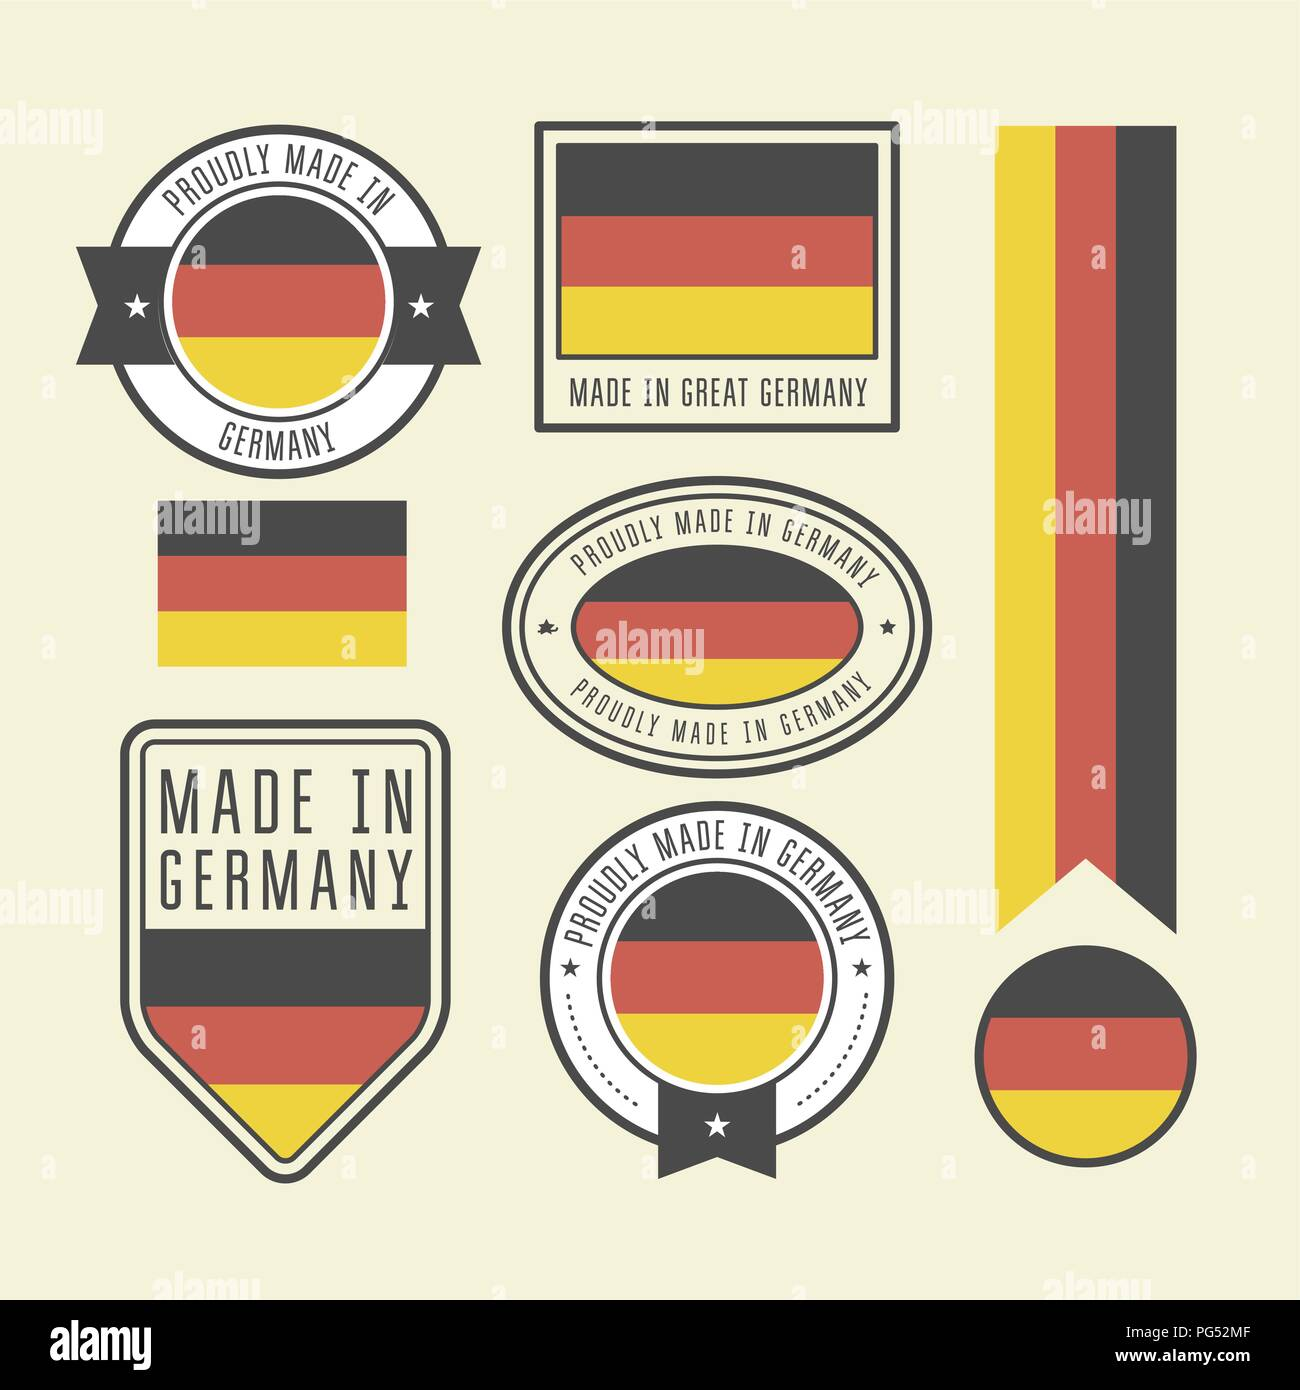 Germany Badges Stock Photos & Germany Badges Stock Images